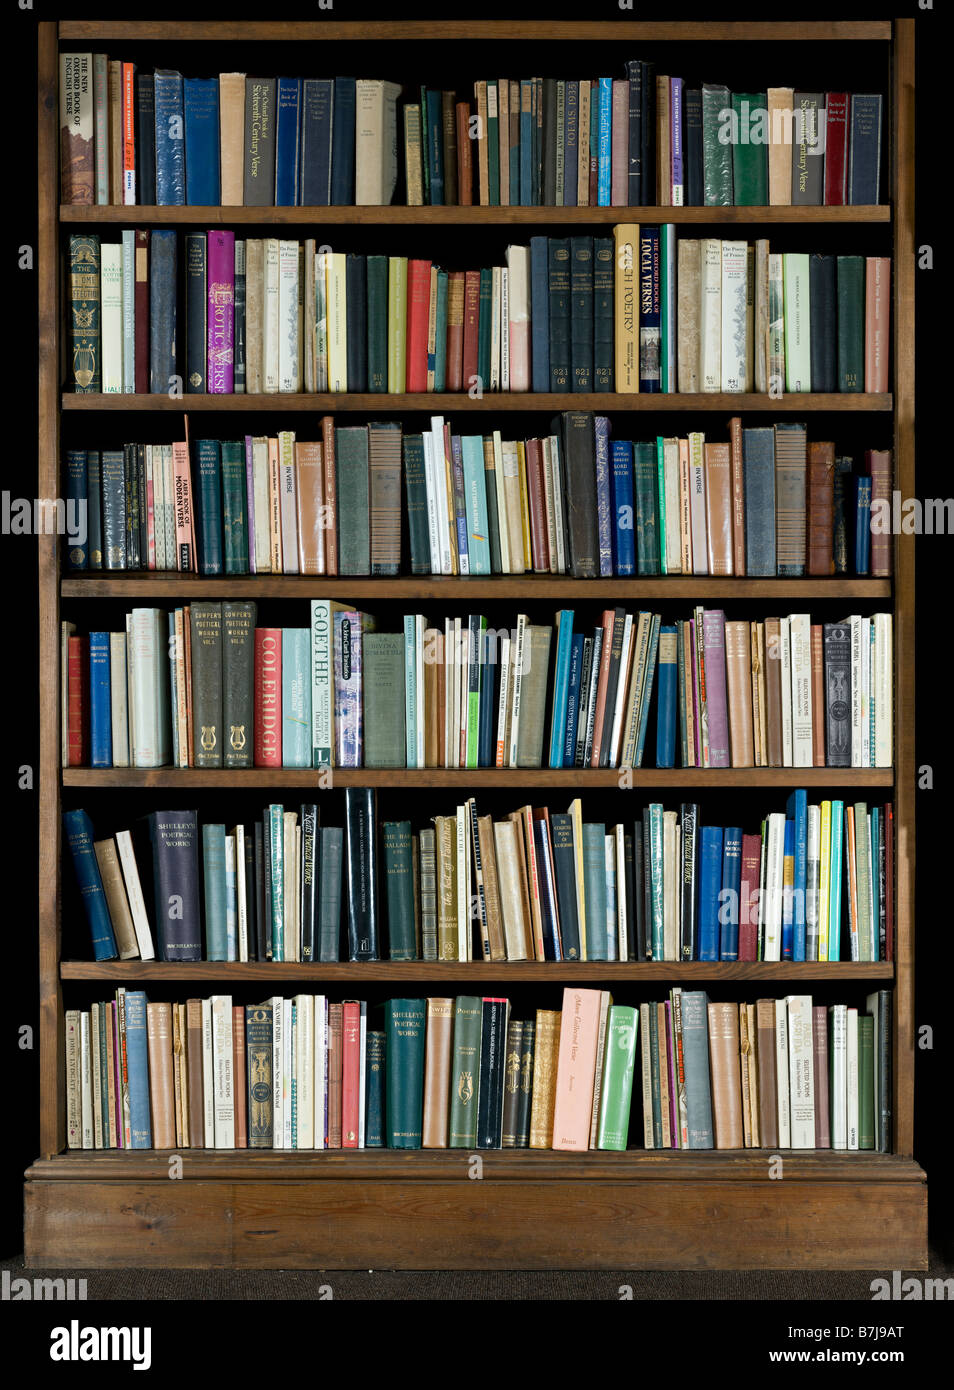 high resolution image of books on a bookshelf on a black background - Picture Of Book Shelf